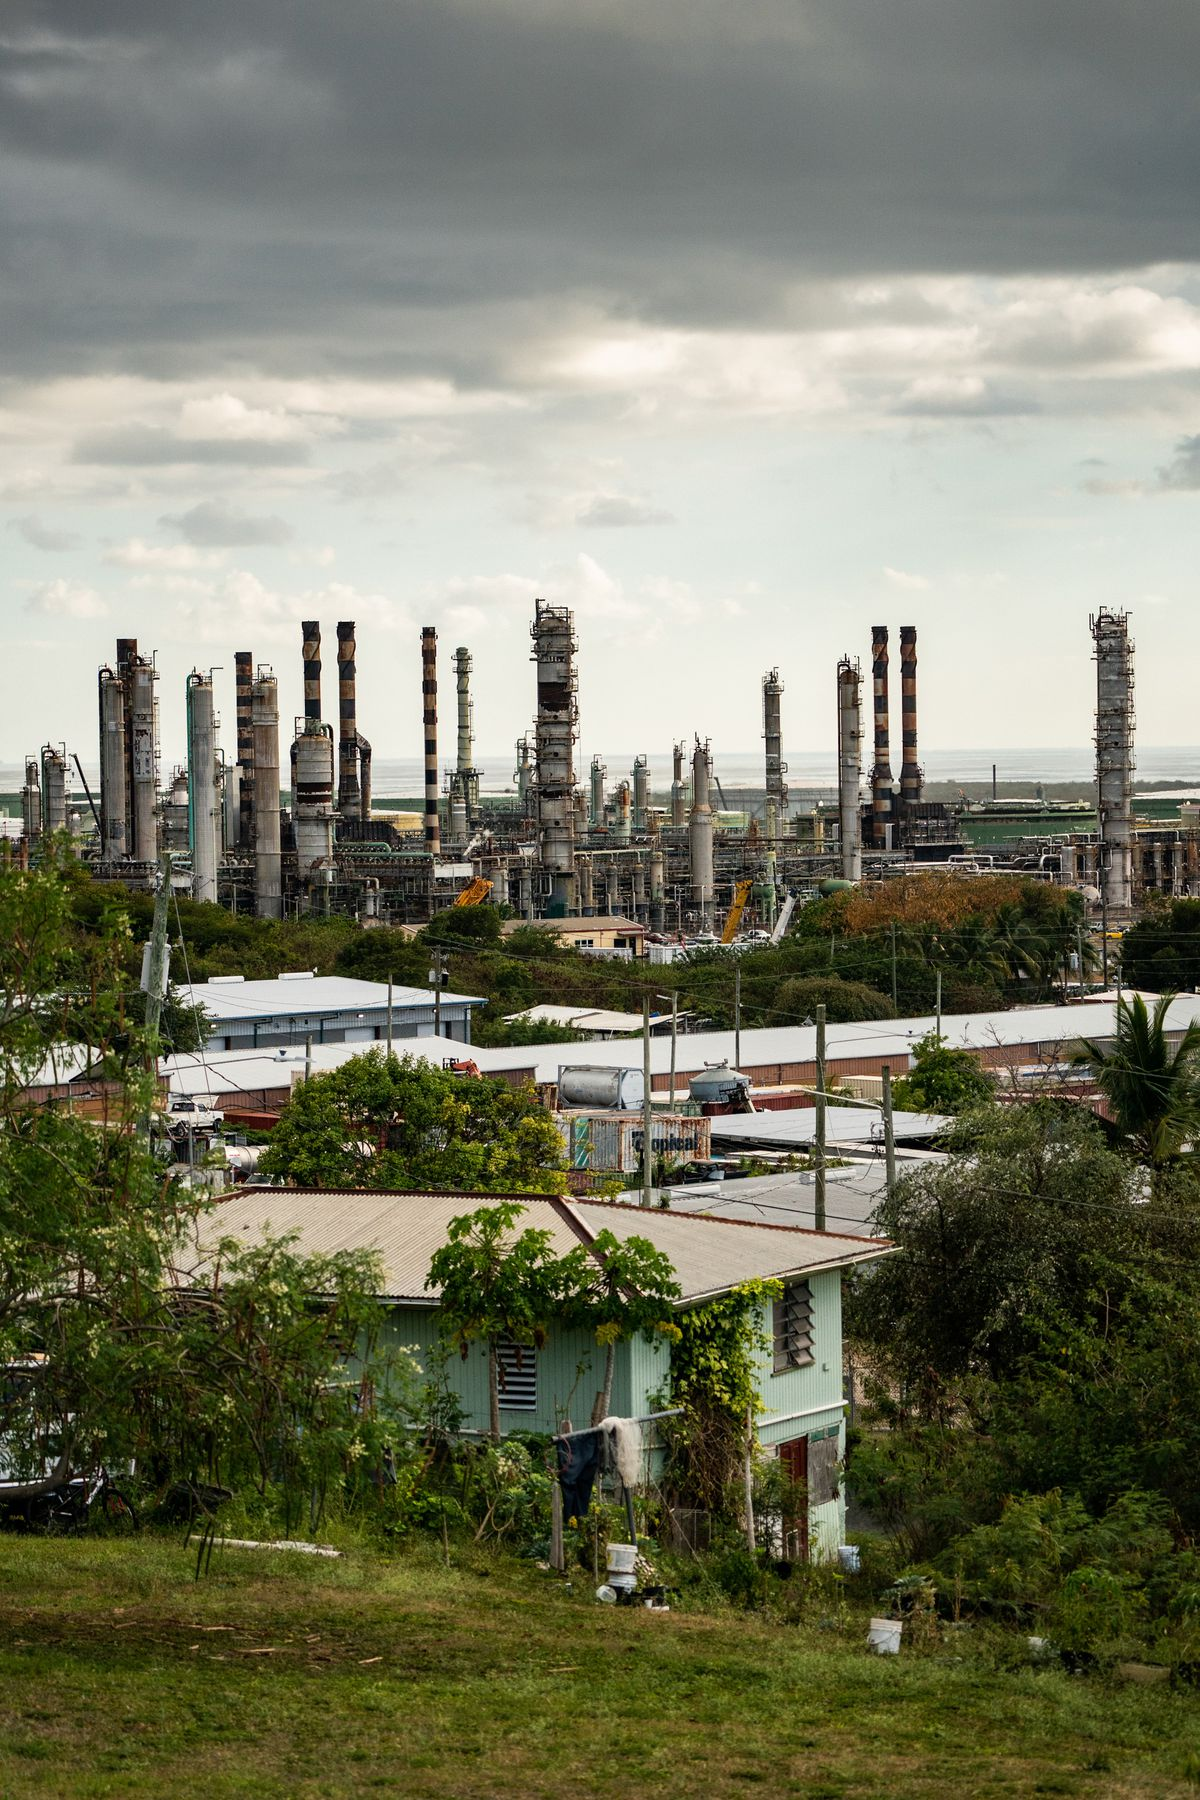 The Limetree Bay refinery is shown from a nearby neighborhood in St. Croix, U.S. Virgin Islands, on Saturday, March 13, 2021. (Washington Post photo by Salwan Georges)